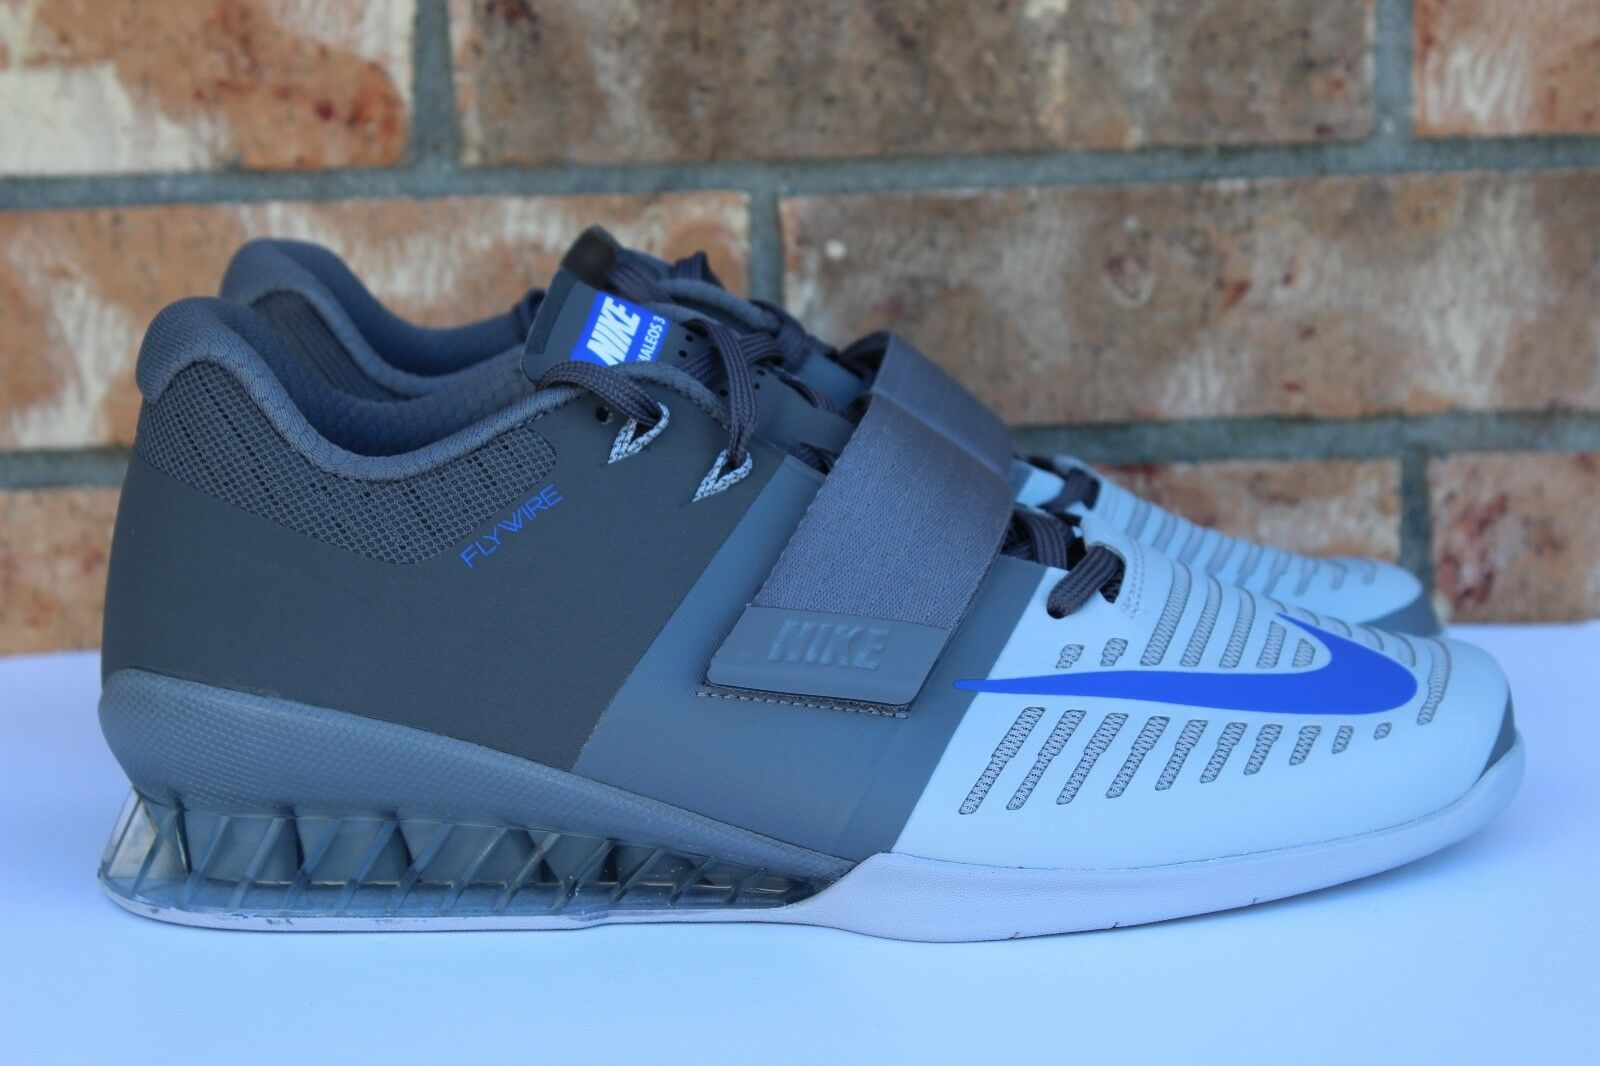 Men's Nike Romaleos 3 Weightlifting Crossfit Trainer shoes Grey bluee 852933-001